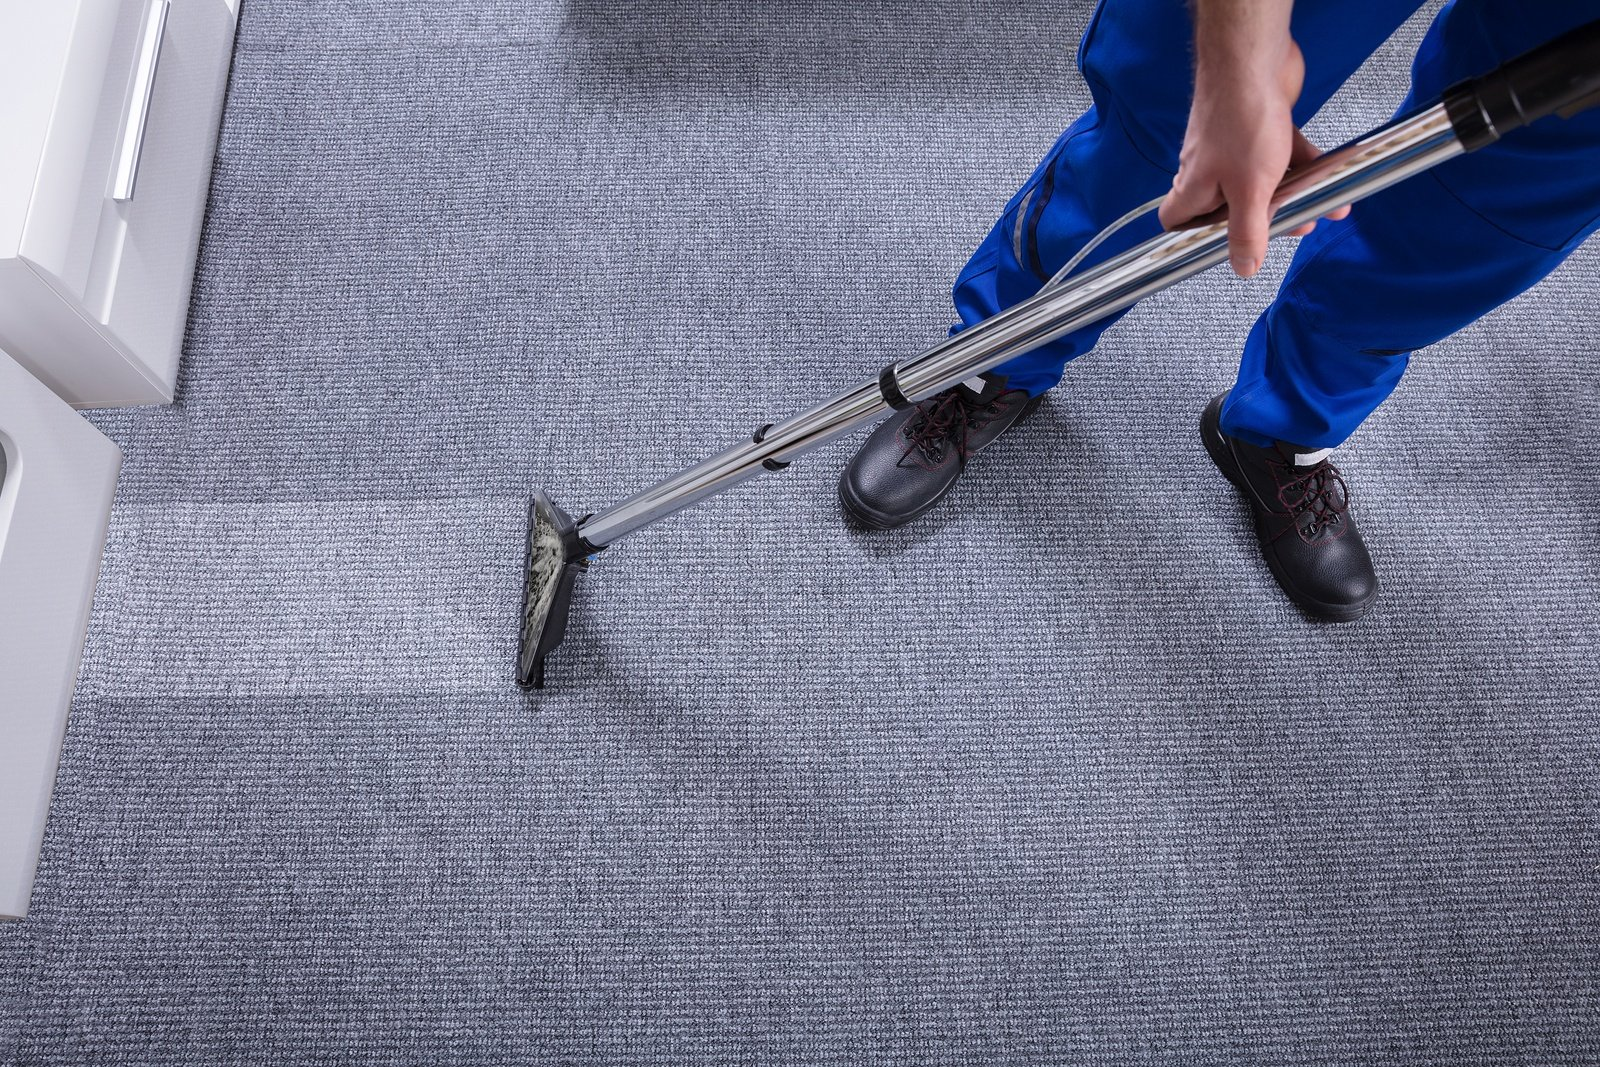 Commercial Carpet Cleaning Canberra